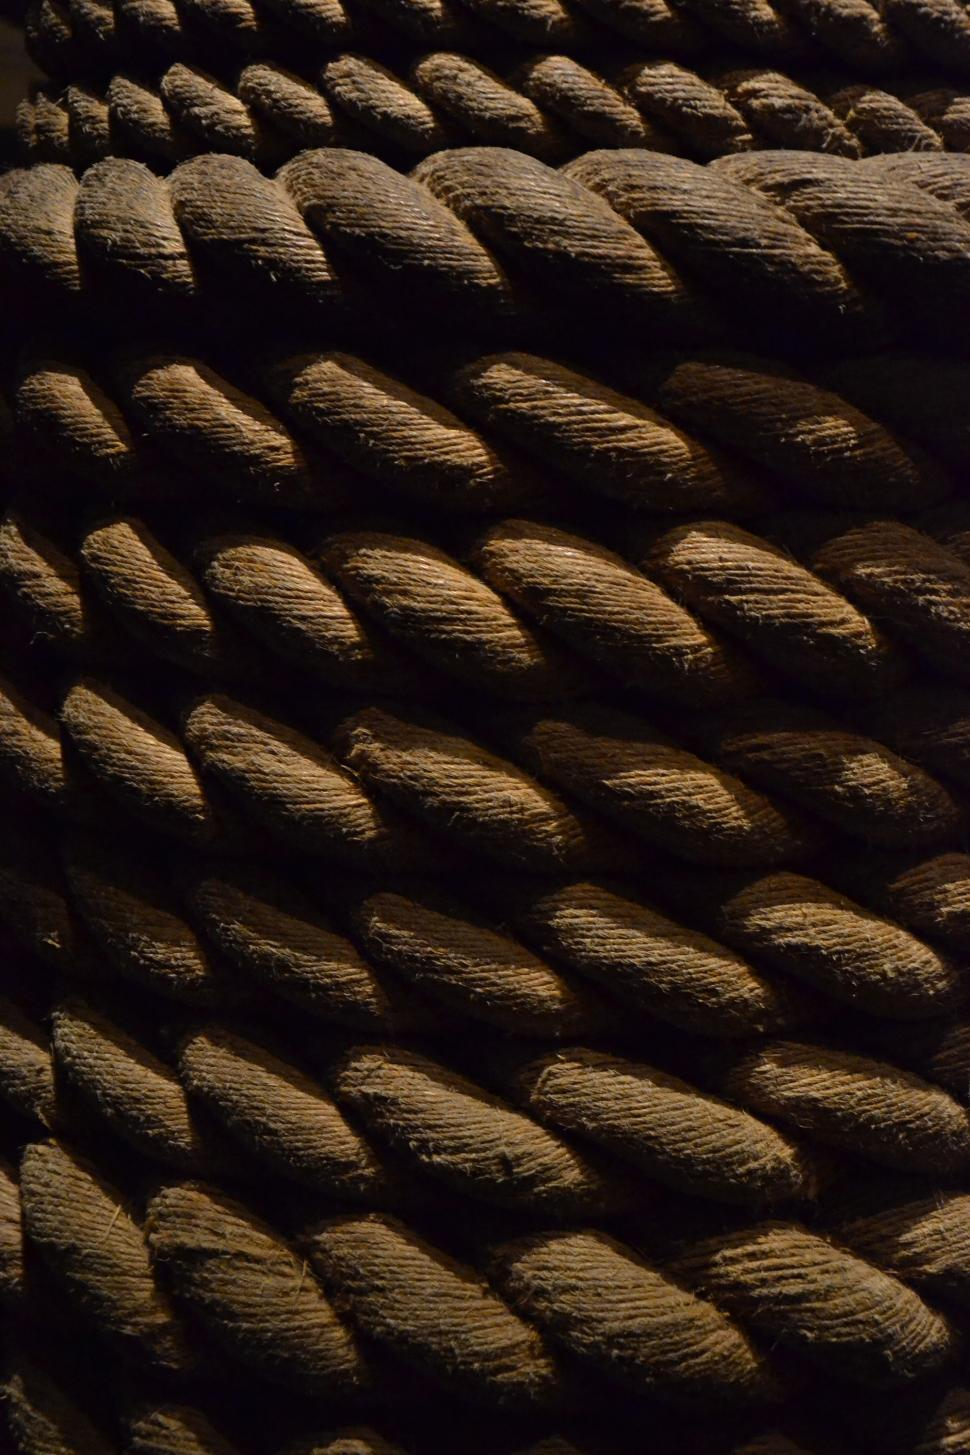 Download Free Stock HD Photo of Grunge rope Online